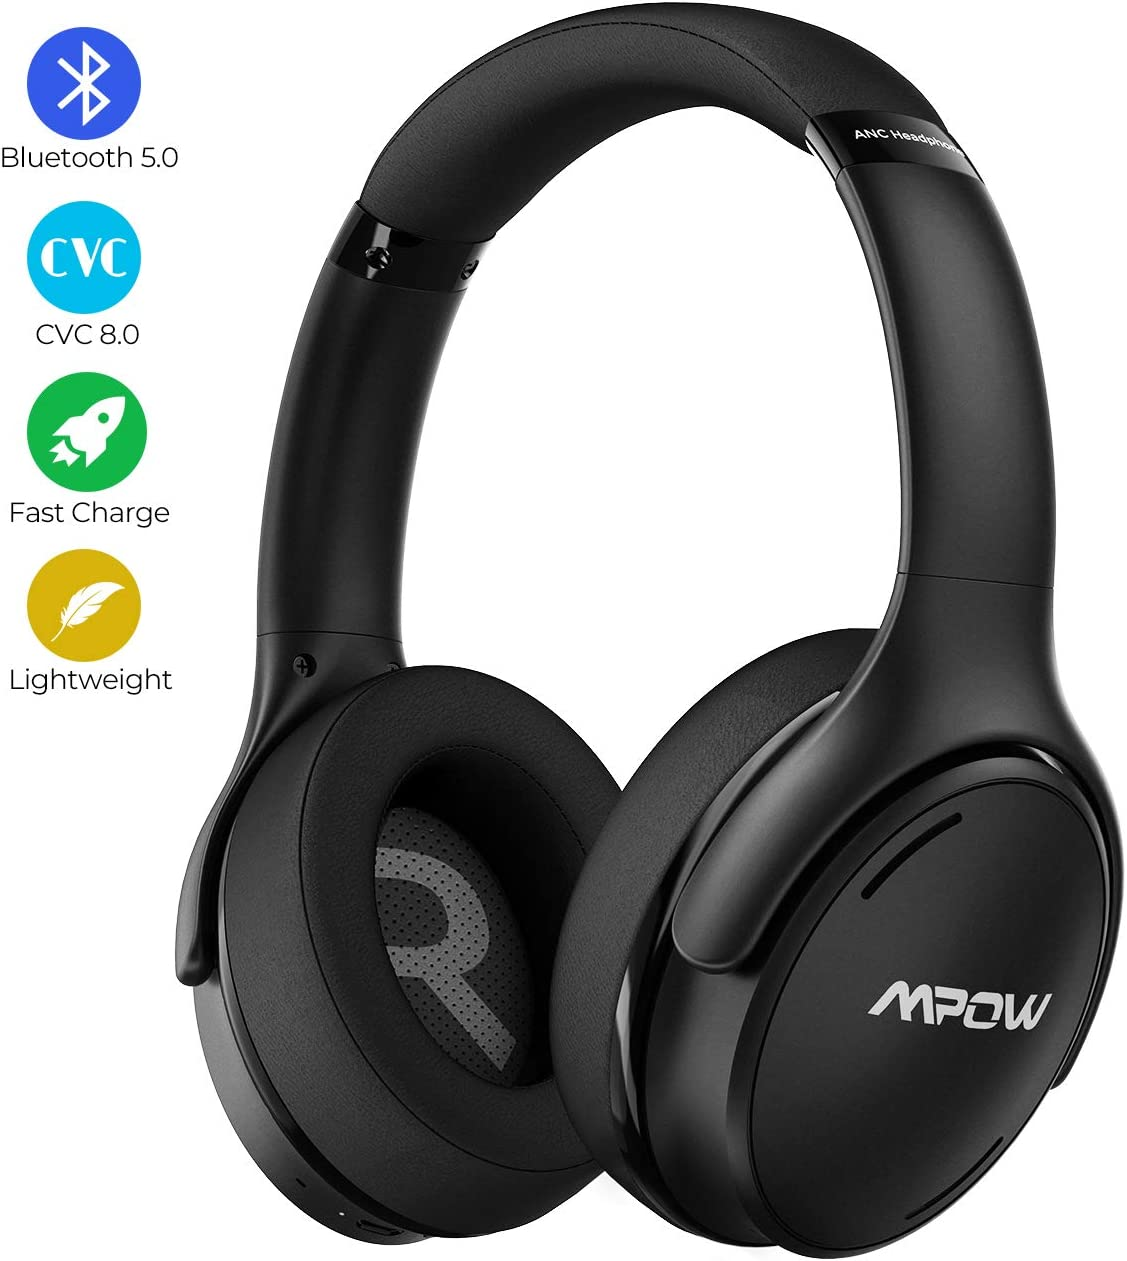 Active Noise Cancelling Headphones Quick Charge TaoTronics Bluetooth 5.0 Headphones Over Ear Wireless Headset with Deep Bass 30H Playtime for Travel Work TV PC Cellphone